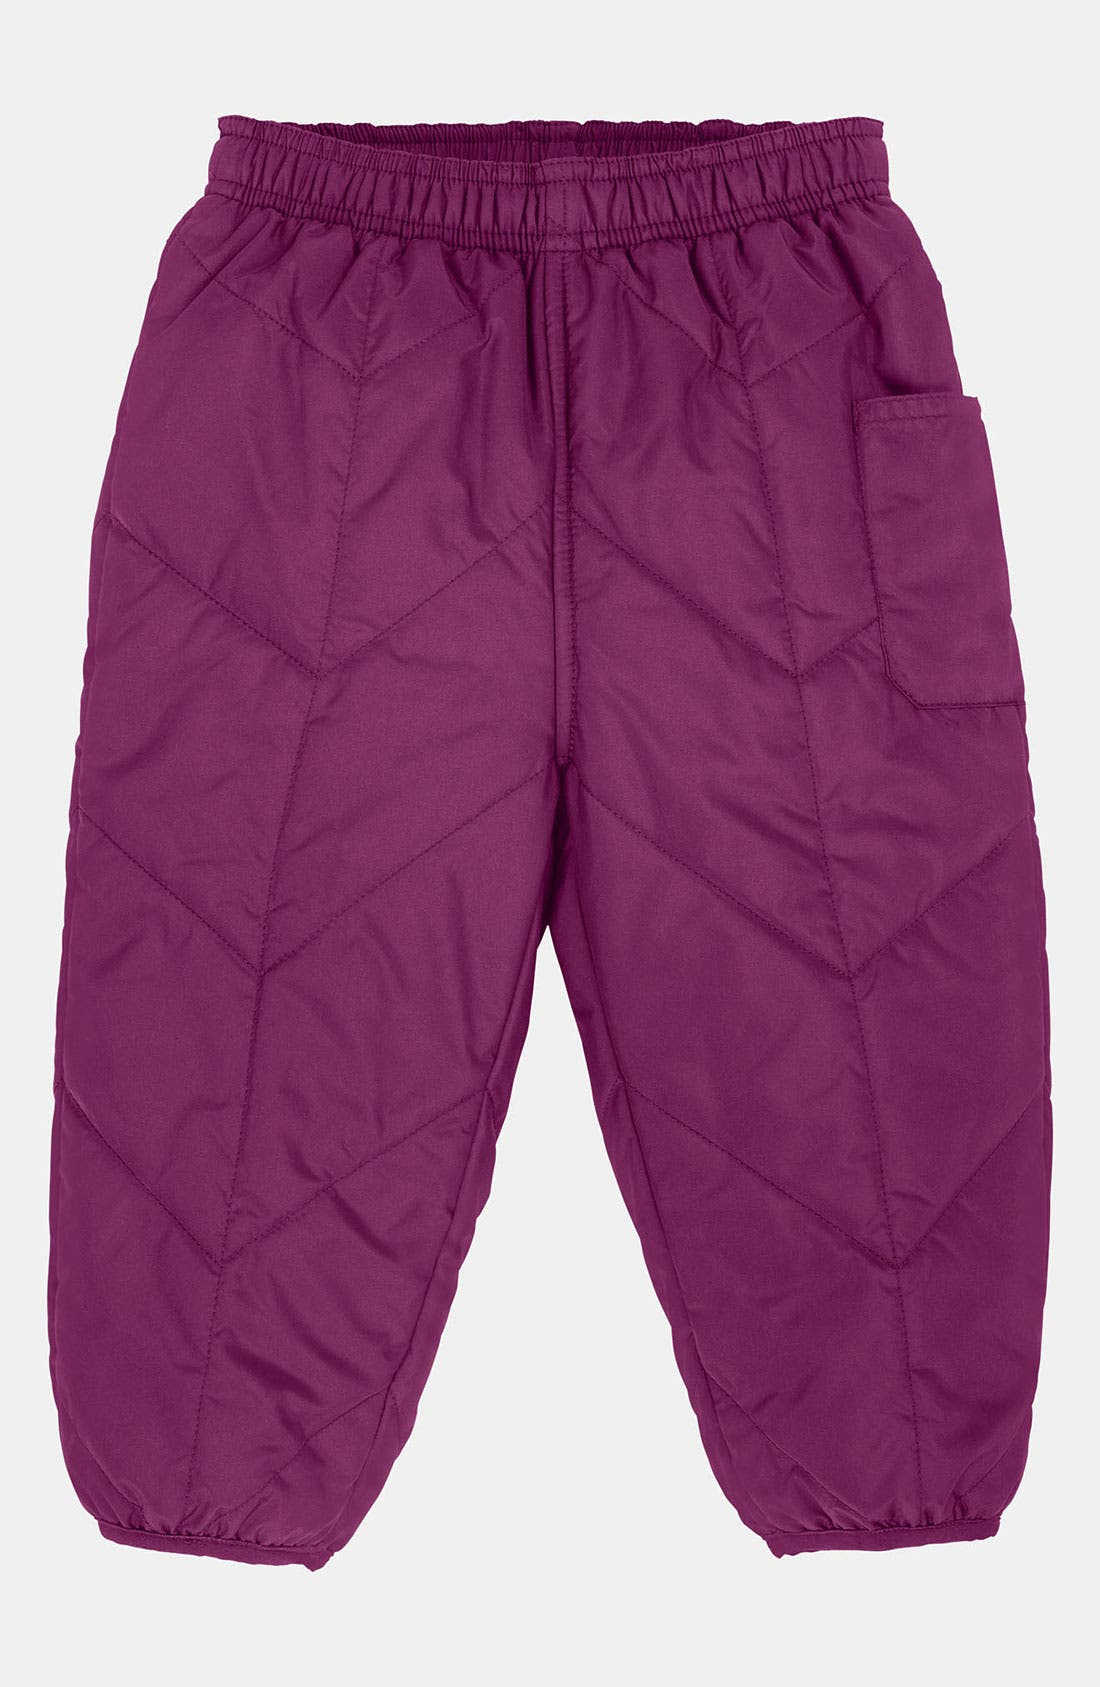 Alternate Image 1 Selected - The North Face 'Perrito' Reversible Snow Pants (Baby)